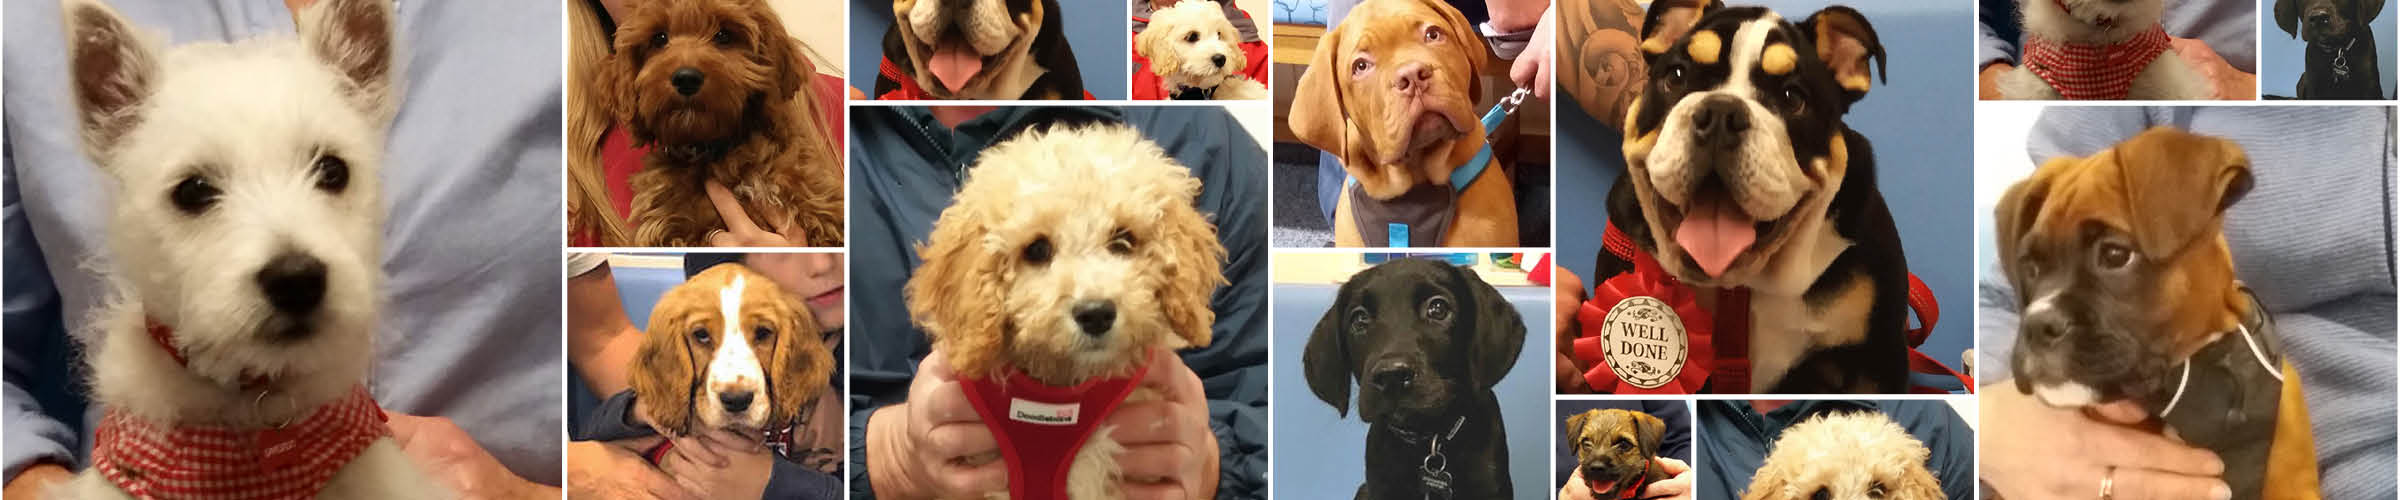 Macqueen Puppy Party Graduates from devizes, pewsey, potterne, rowde